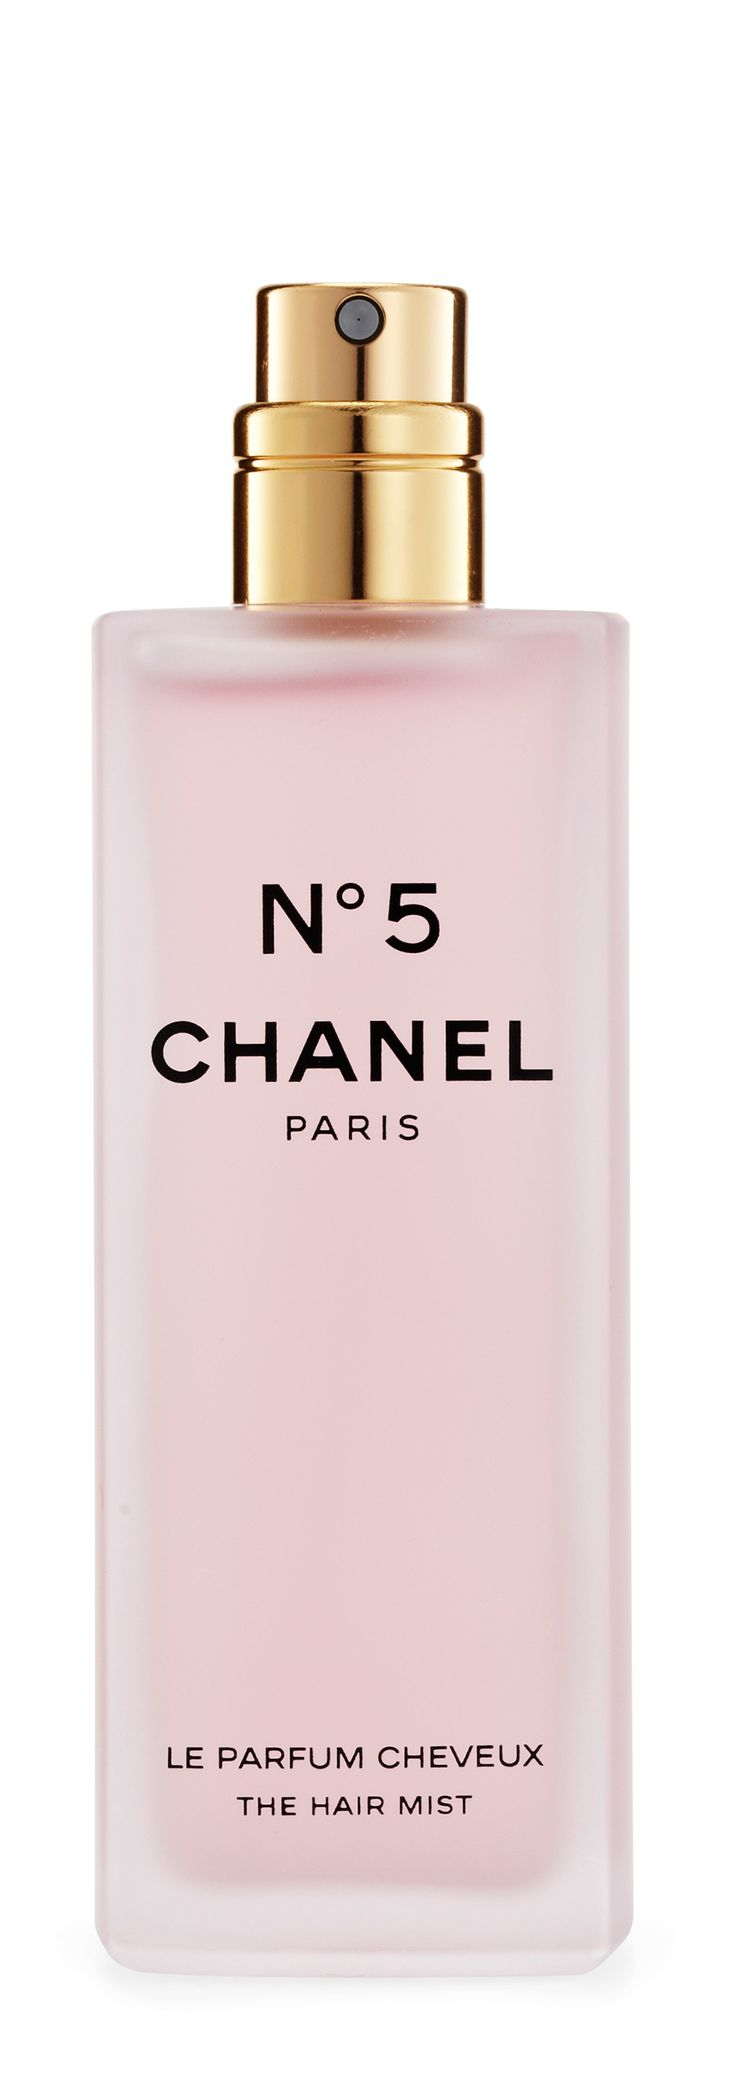 """""""If you, Marilyn Monroe–style, wear nothing to bed but Chanel No. 5, here's a new way to get (un)dressed: a hair mist that's lighter than the eau de parfum. The formula won't weigh down your sexy bed head, so spritz it in your waking hours, too."""" — Val Monroe, O Beauty Director"""